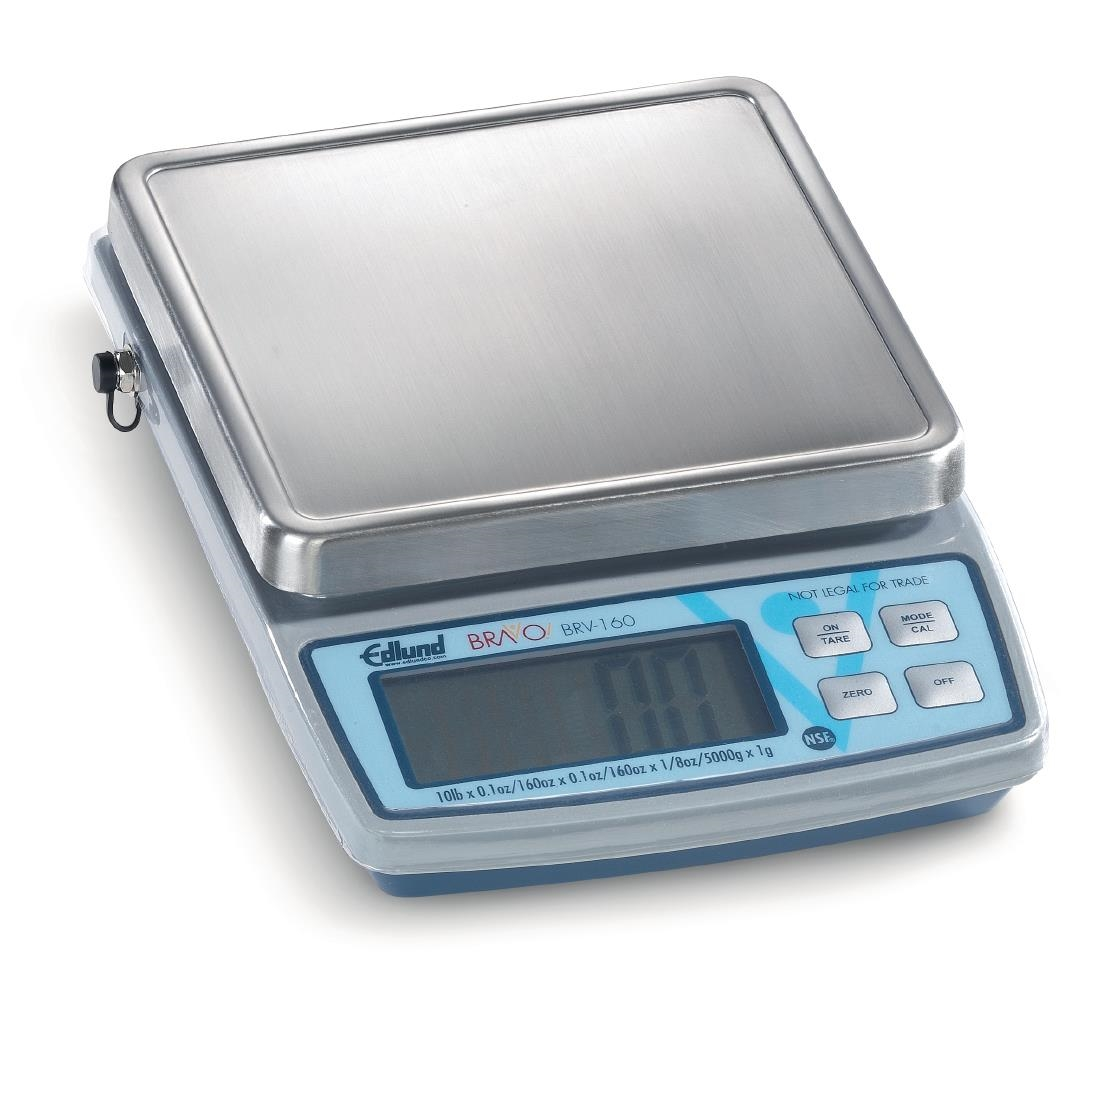 Edlund Bravo 160 Digital Scale with Clearshield Protective Cover 4.5 ...